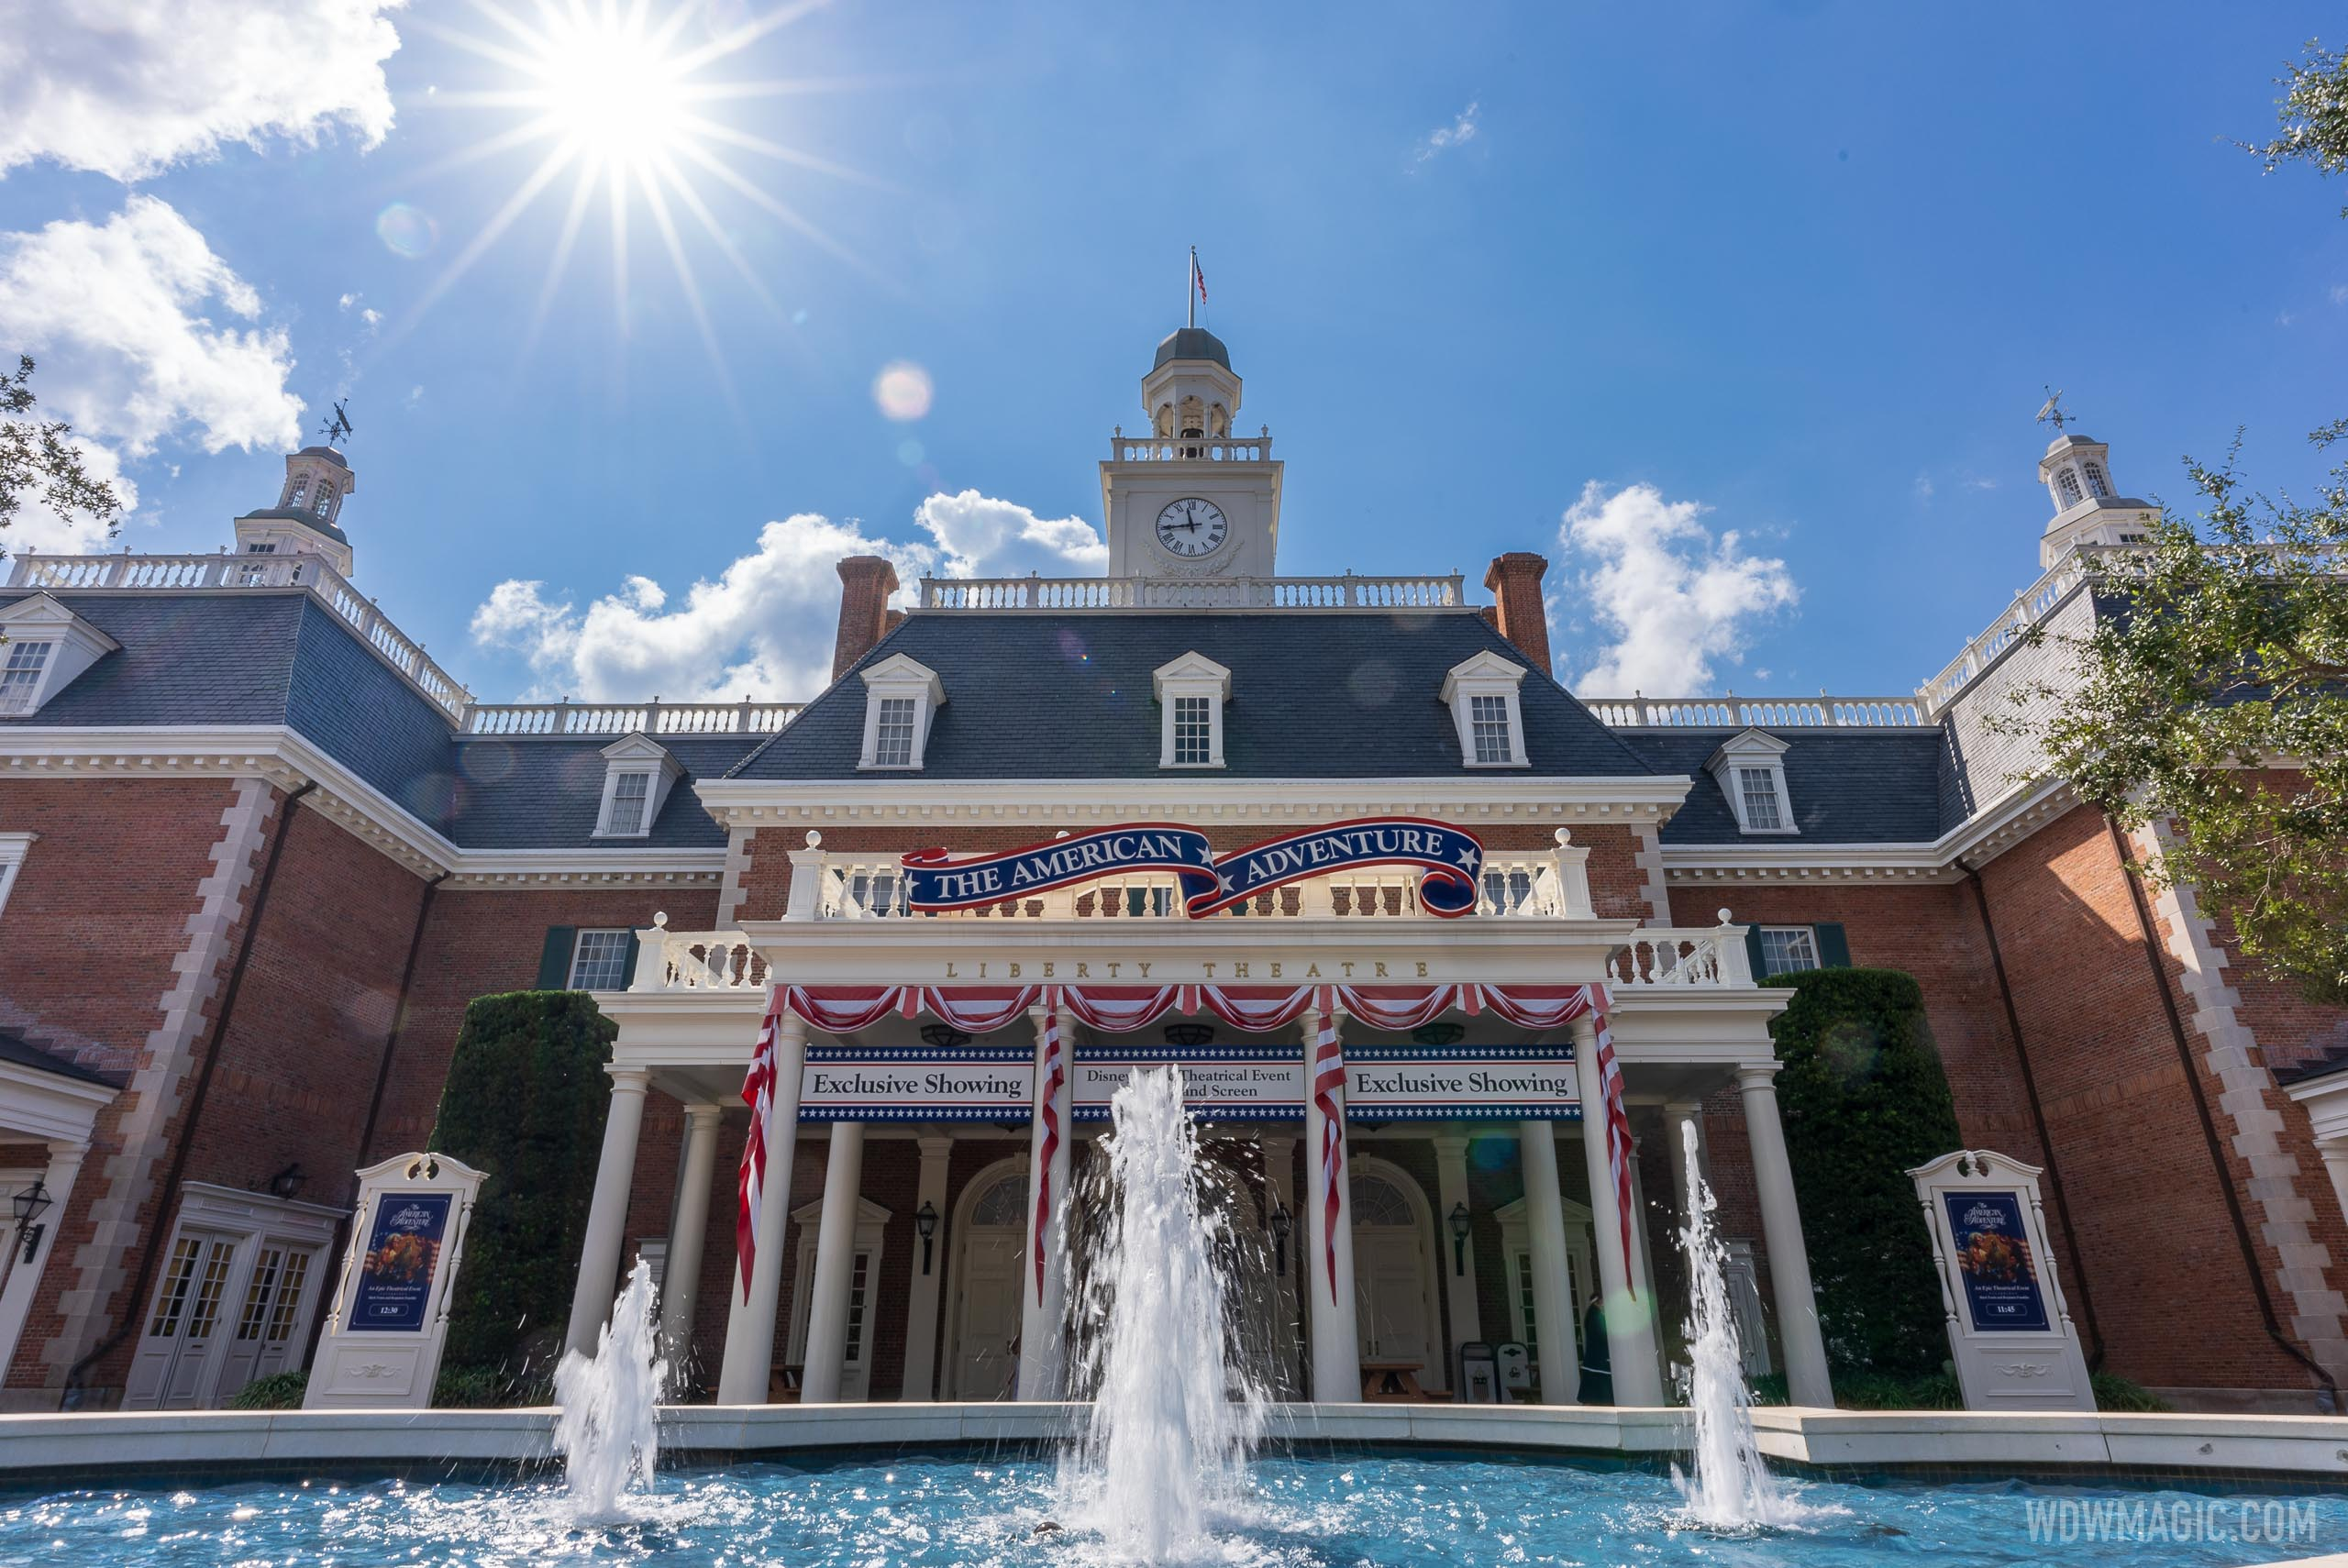 American Adventure pavilion overview